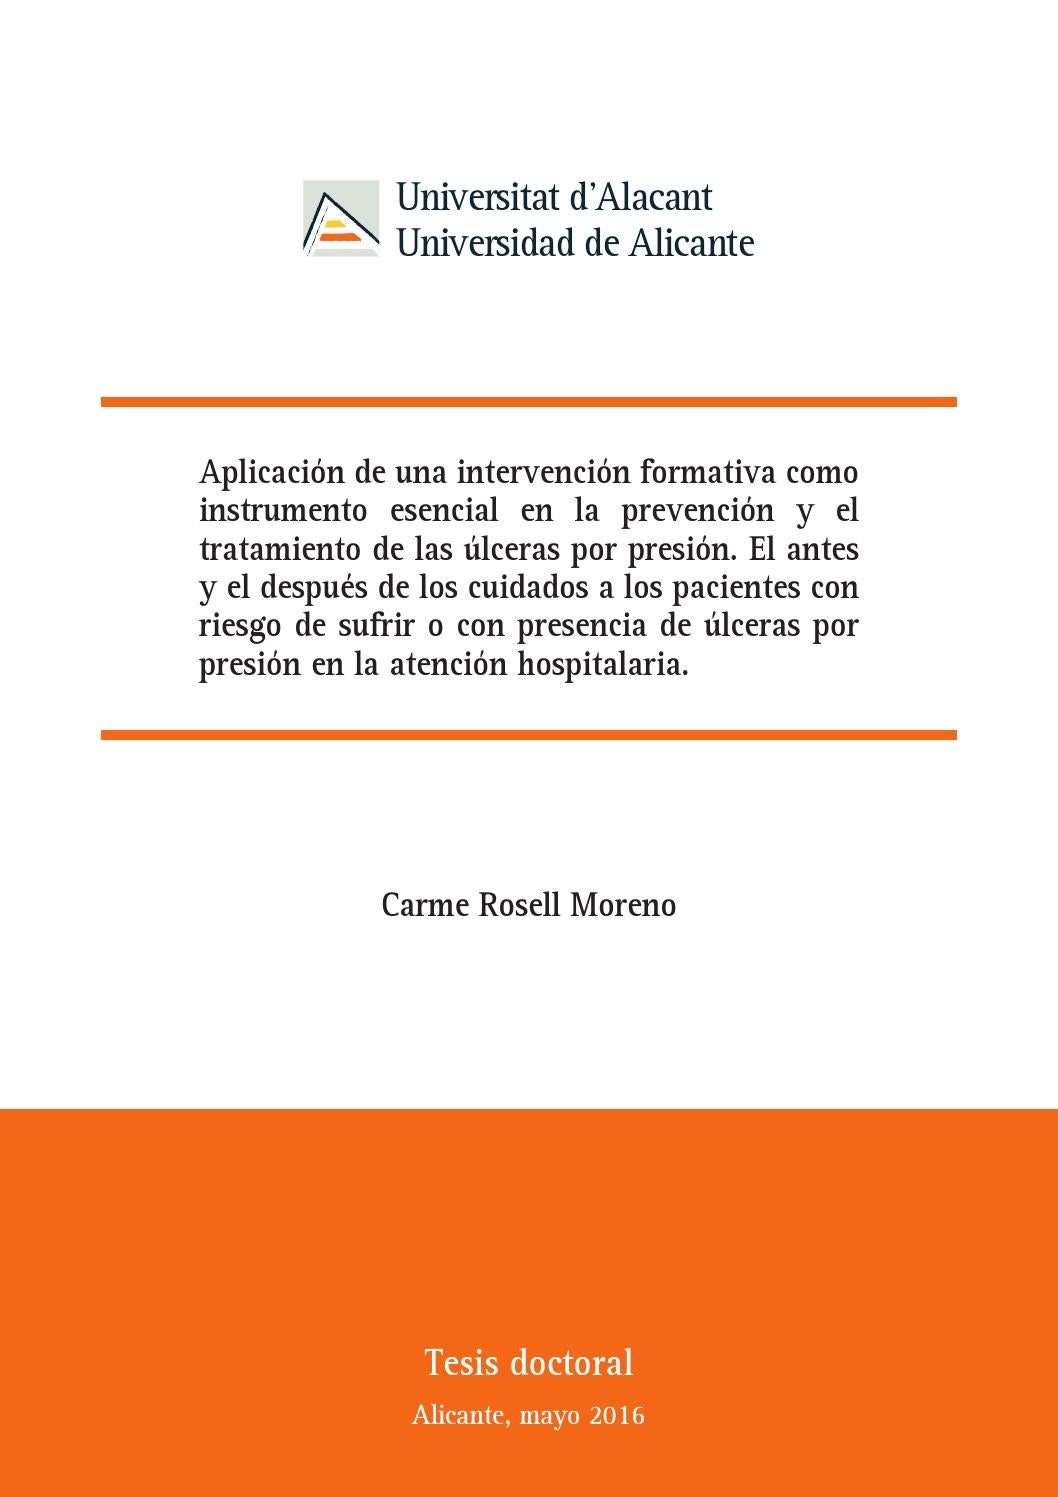 Tesis Doctoral - Carme Rosell by G.LL.R - issuu